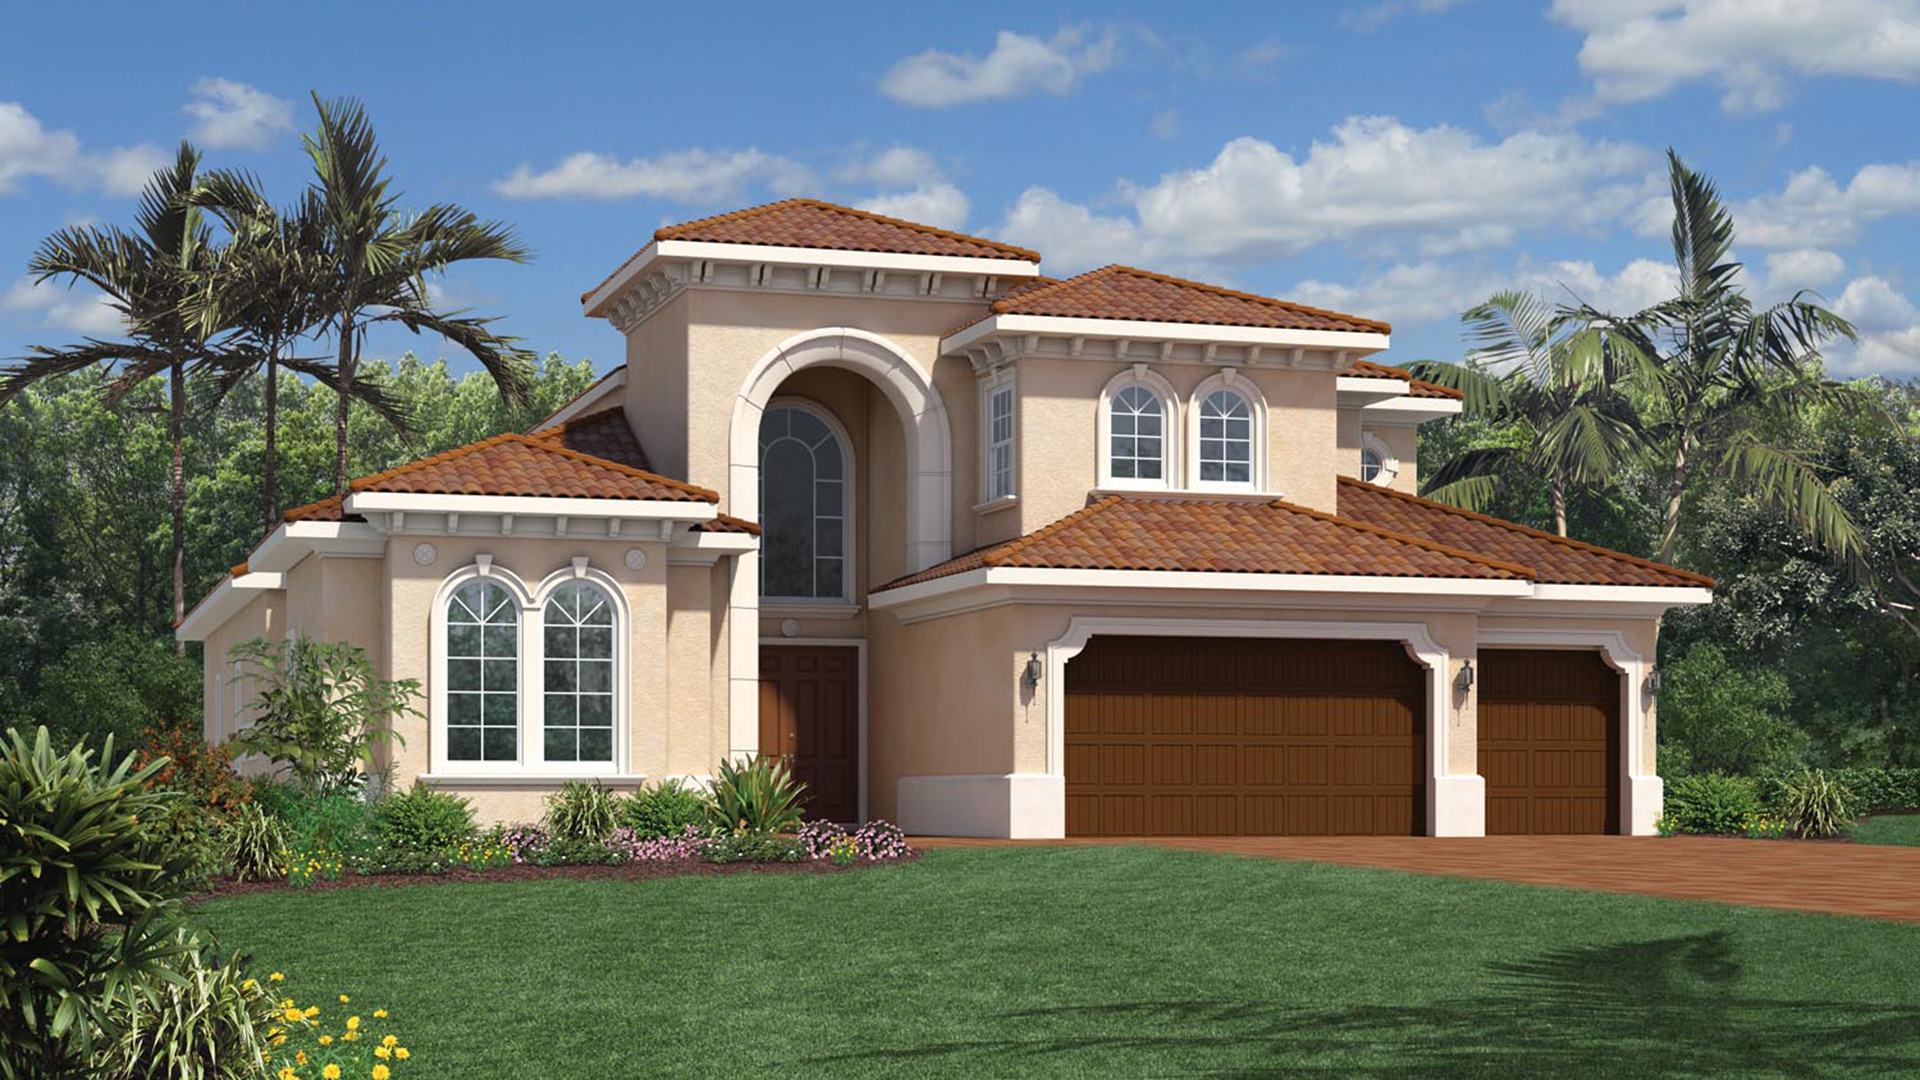 Jupiter country club the heritage collection the for Portland home designers